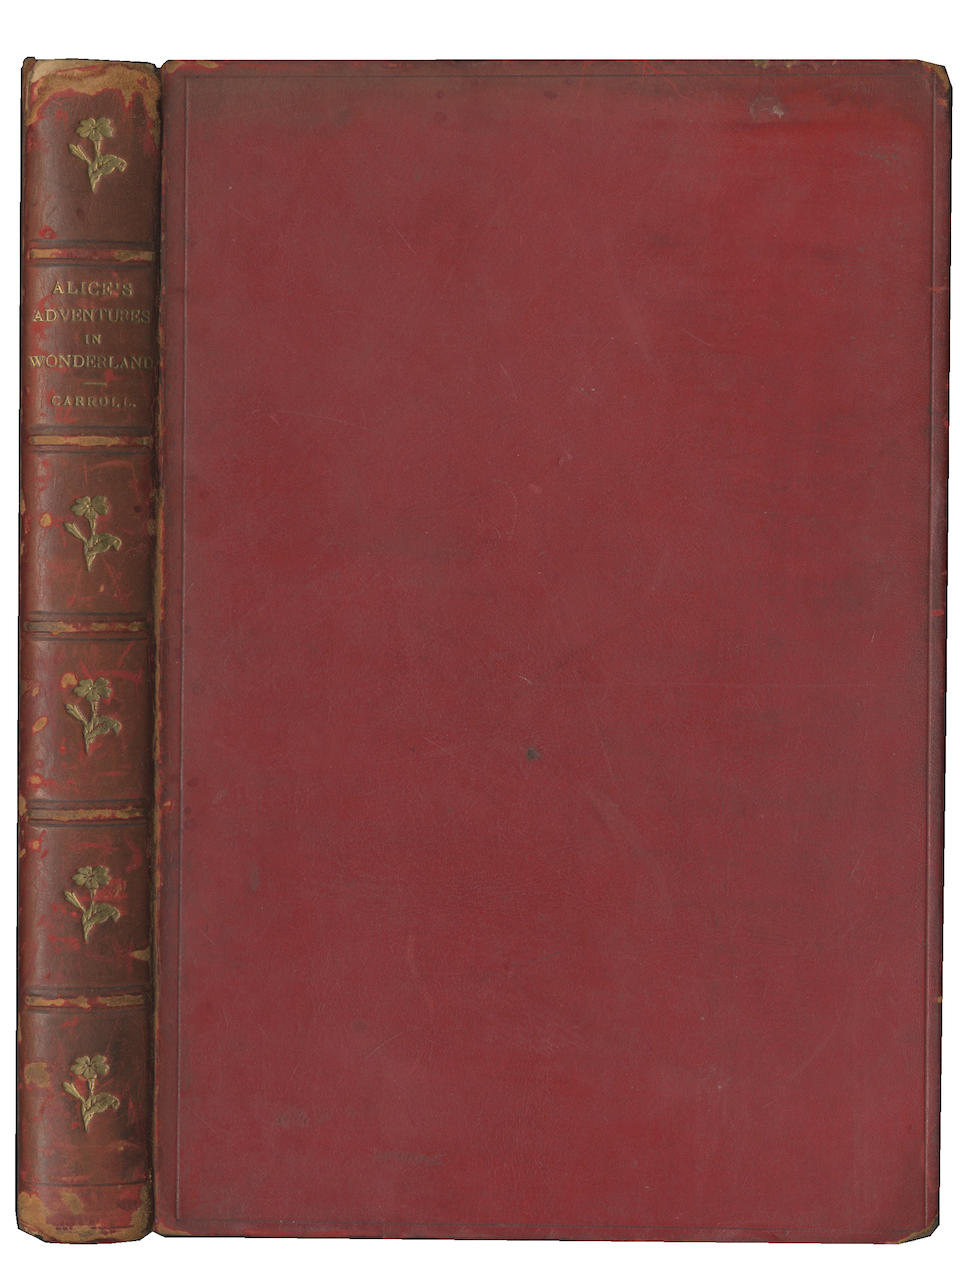 """DODGSON (CHARLES LUTWIDGE) 'LEWIS CARROLL' Alice's Adventures in Wonderland, SECOND (FIRST PUBLISHED) EDITION, AUTHOR'S PRESENTATION COPY, INSCRIBED to """"Margaret Evelyn Hardy - from the Author"""" in black ink on the half-title, Macmillan, 1866 [1865]"""